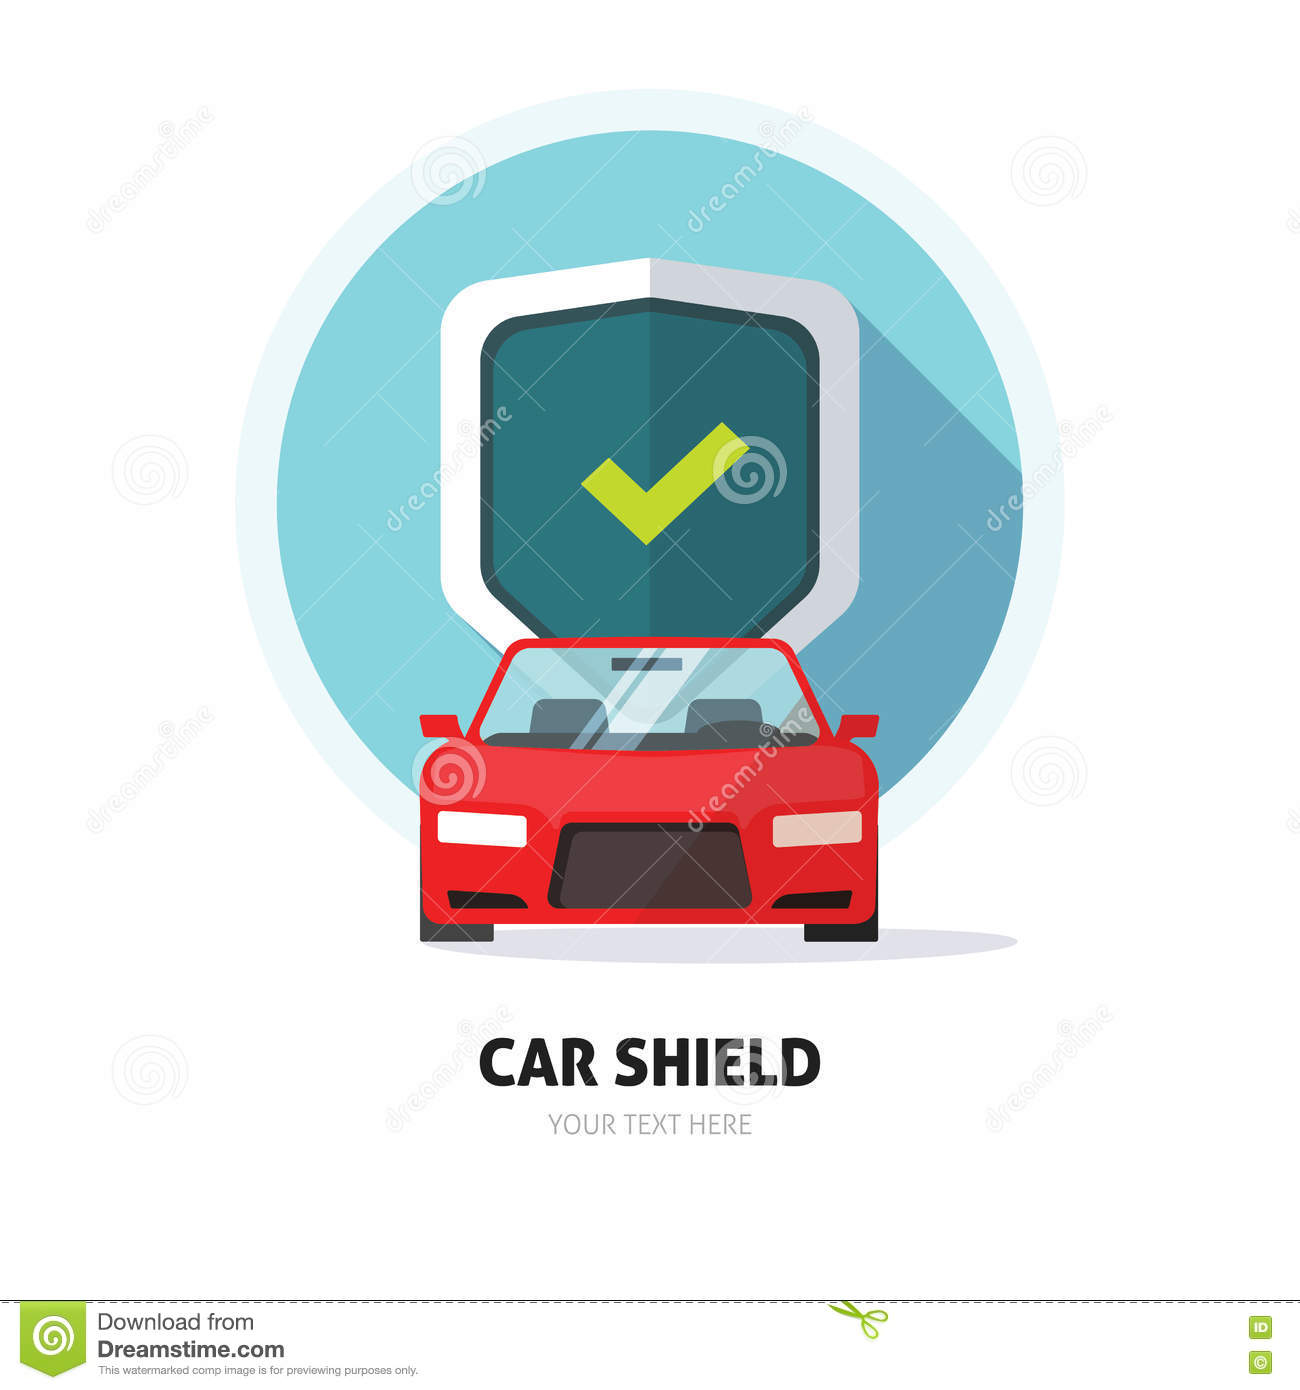 car-guard-shield-sign-collision-insurance-logo-security-protection-emblem-shop-store-auto-tuning-service-red-sport-front-view-71759105.jpg